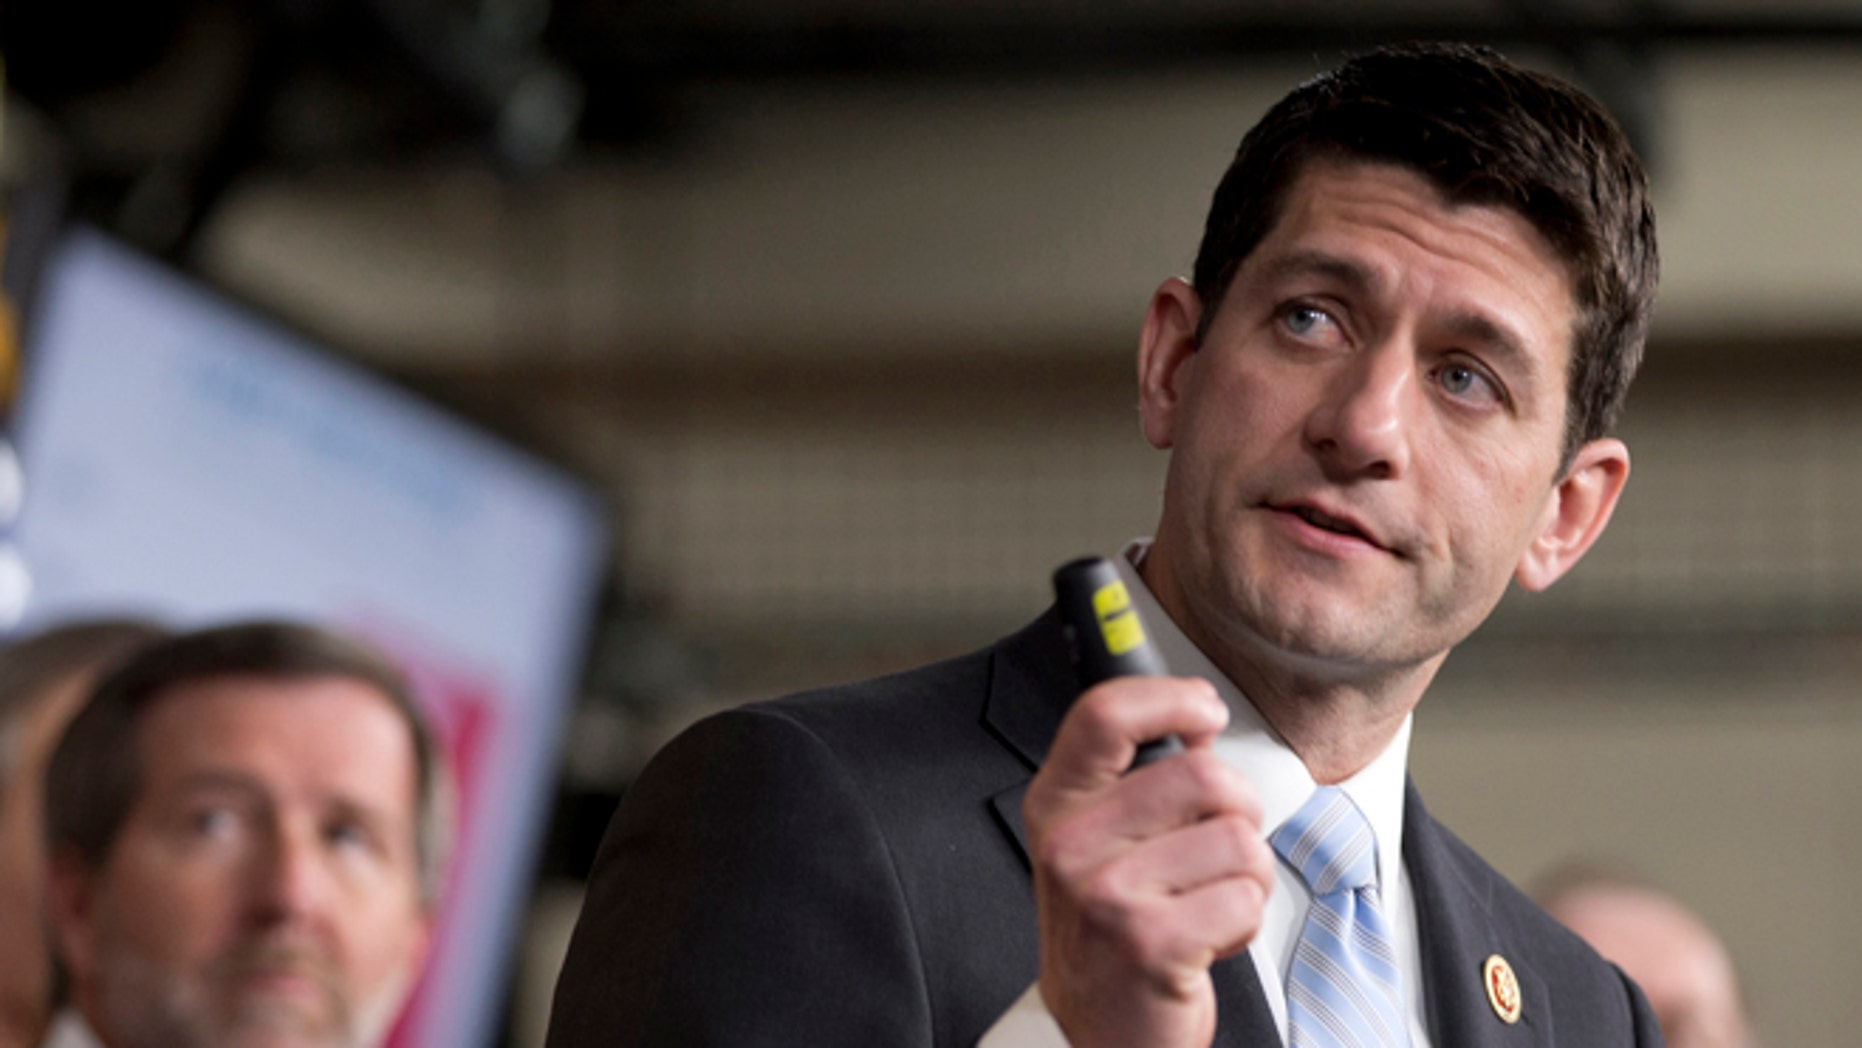 March 12, 2013: House Budget Committee Chairman Rep. Paul Ryan, R-Wis., speaks about the 2014 Budget Resolution during a news conference on Capitol Hill.